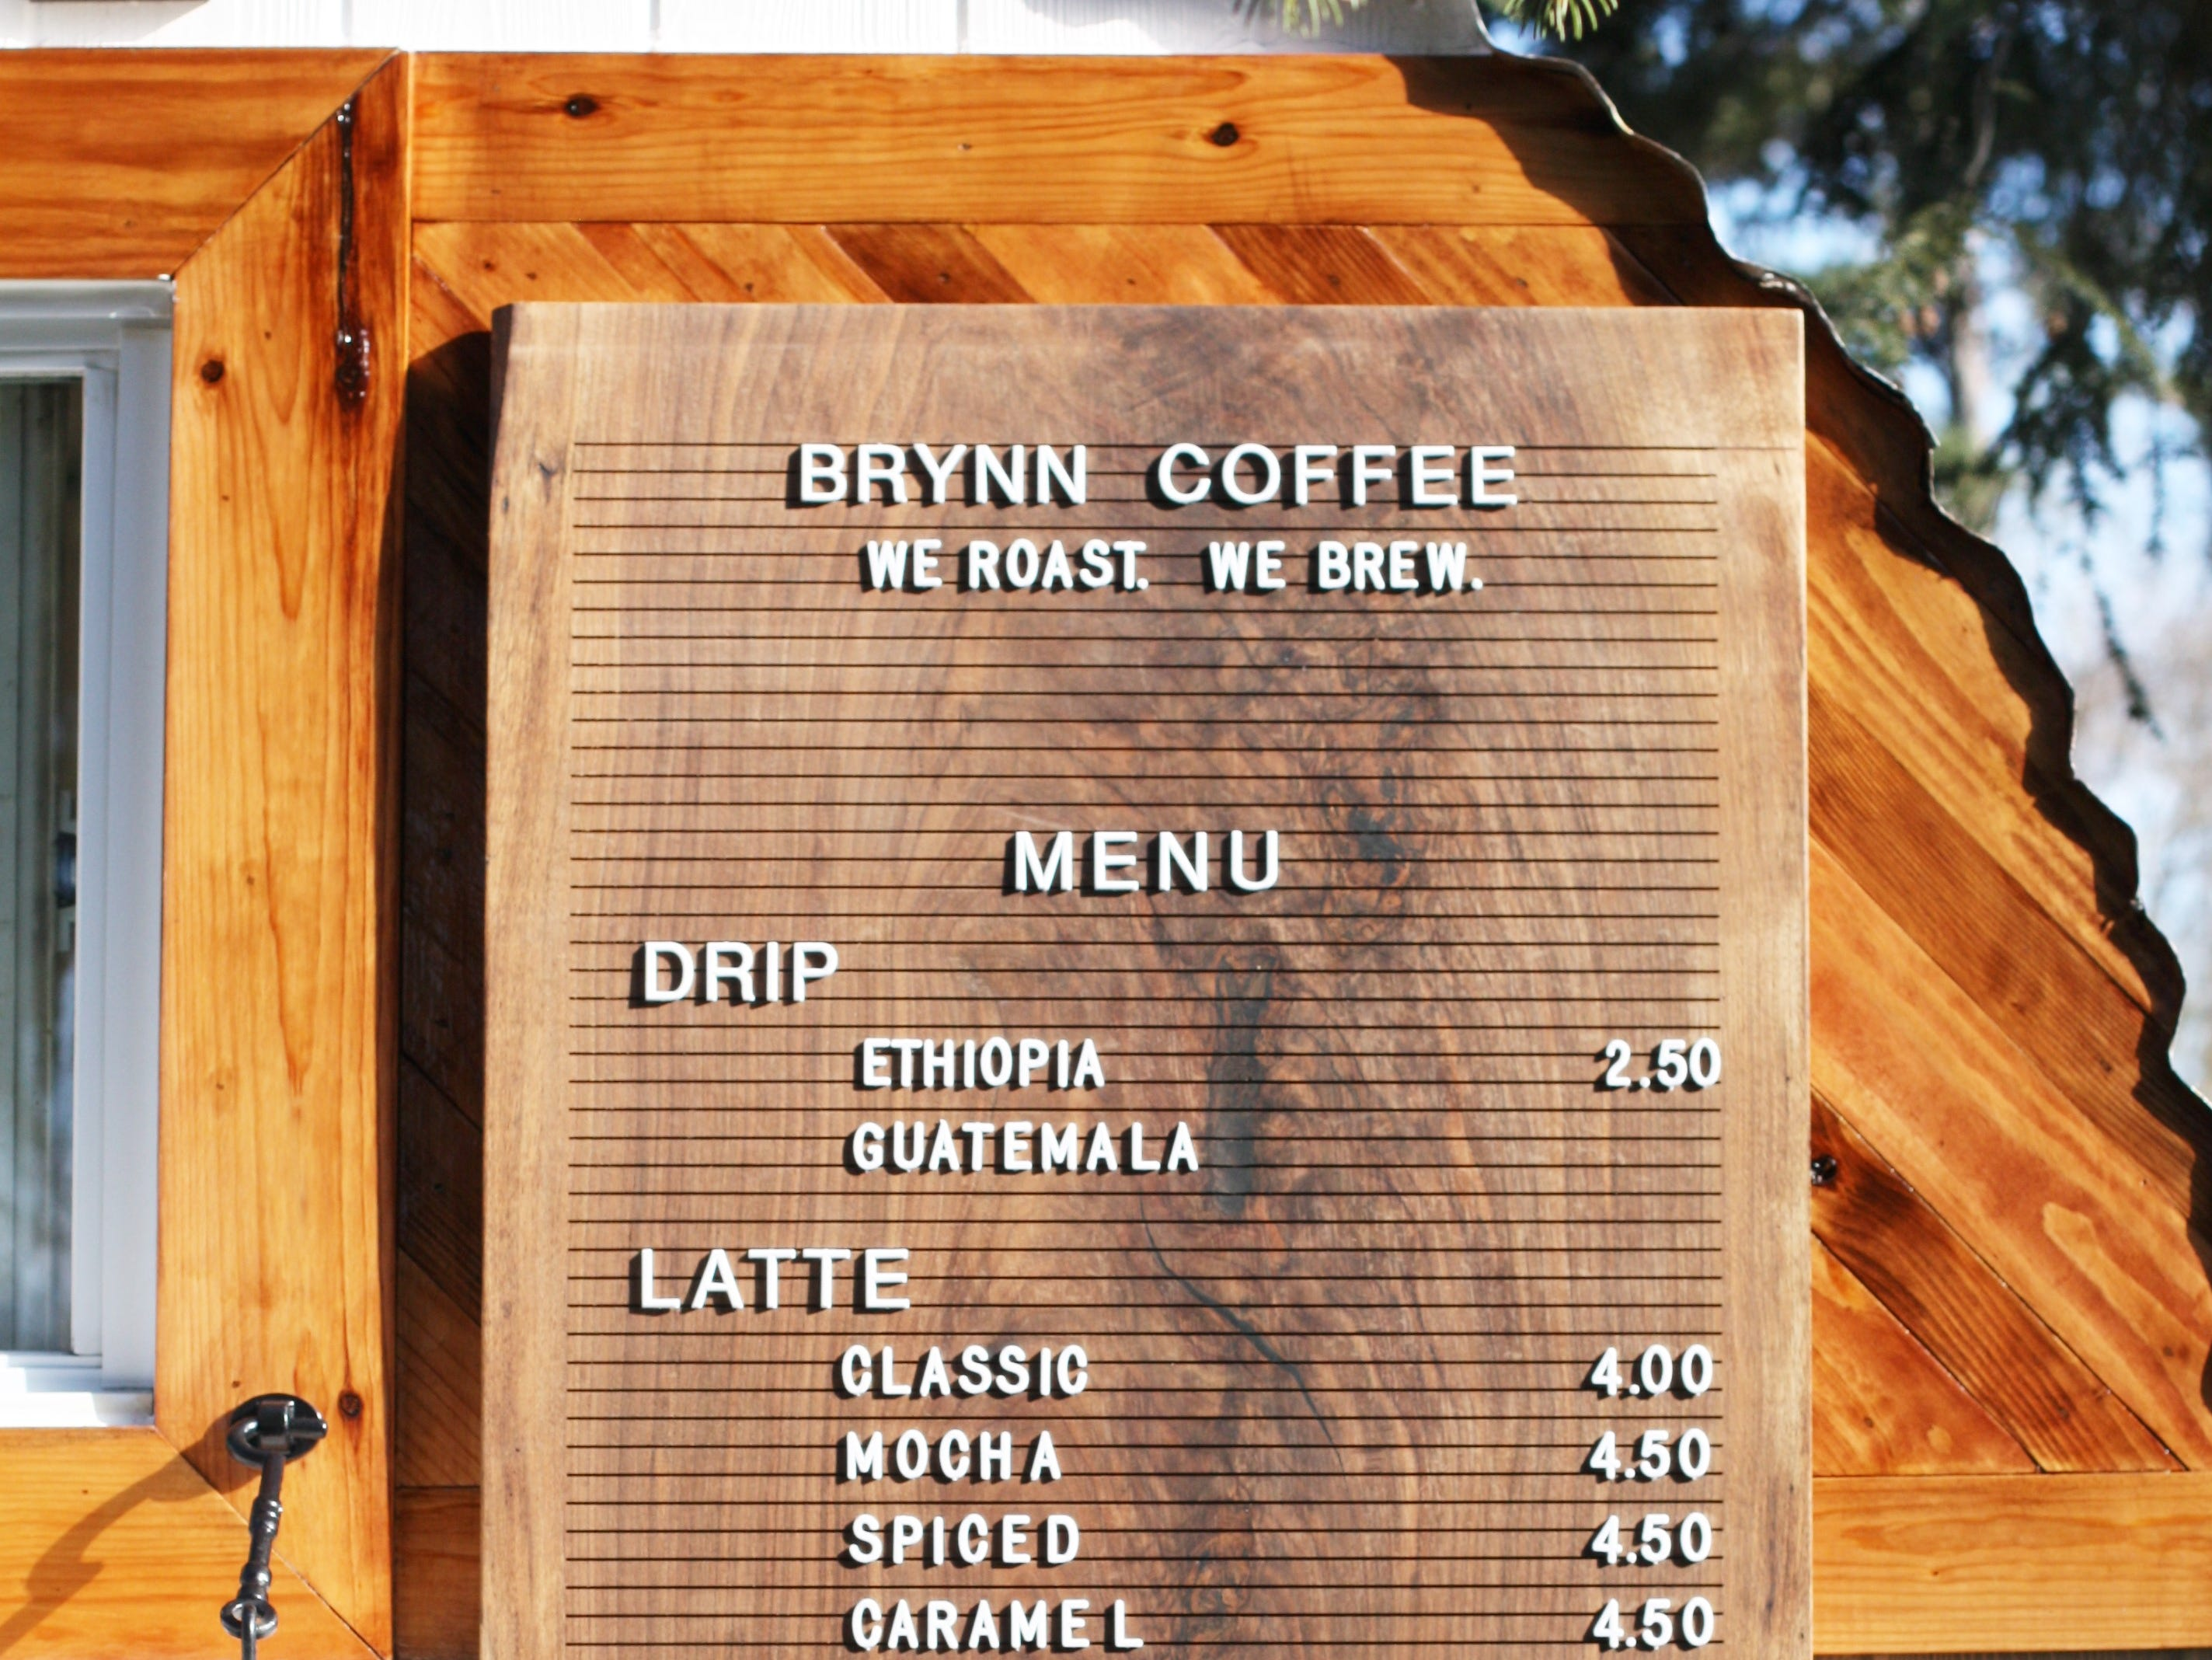 The Brynn Coffee Co menu features specialty lattes including a classic, a mocha made with Dutch chocolate syrup, a spice late and caramel latte.